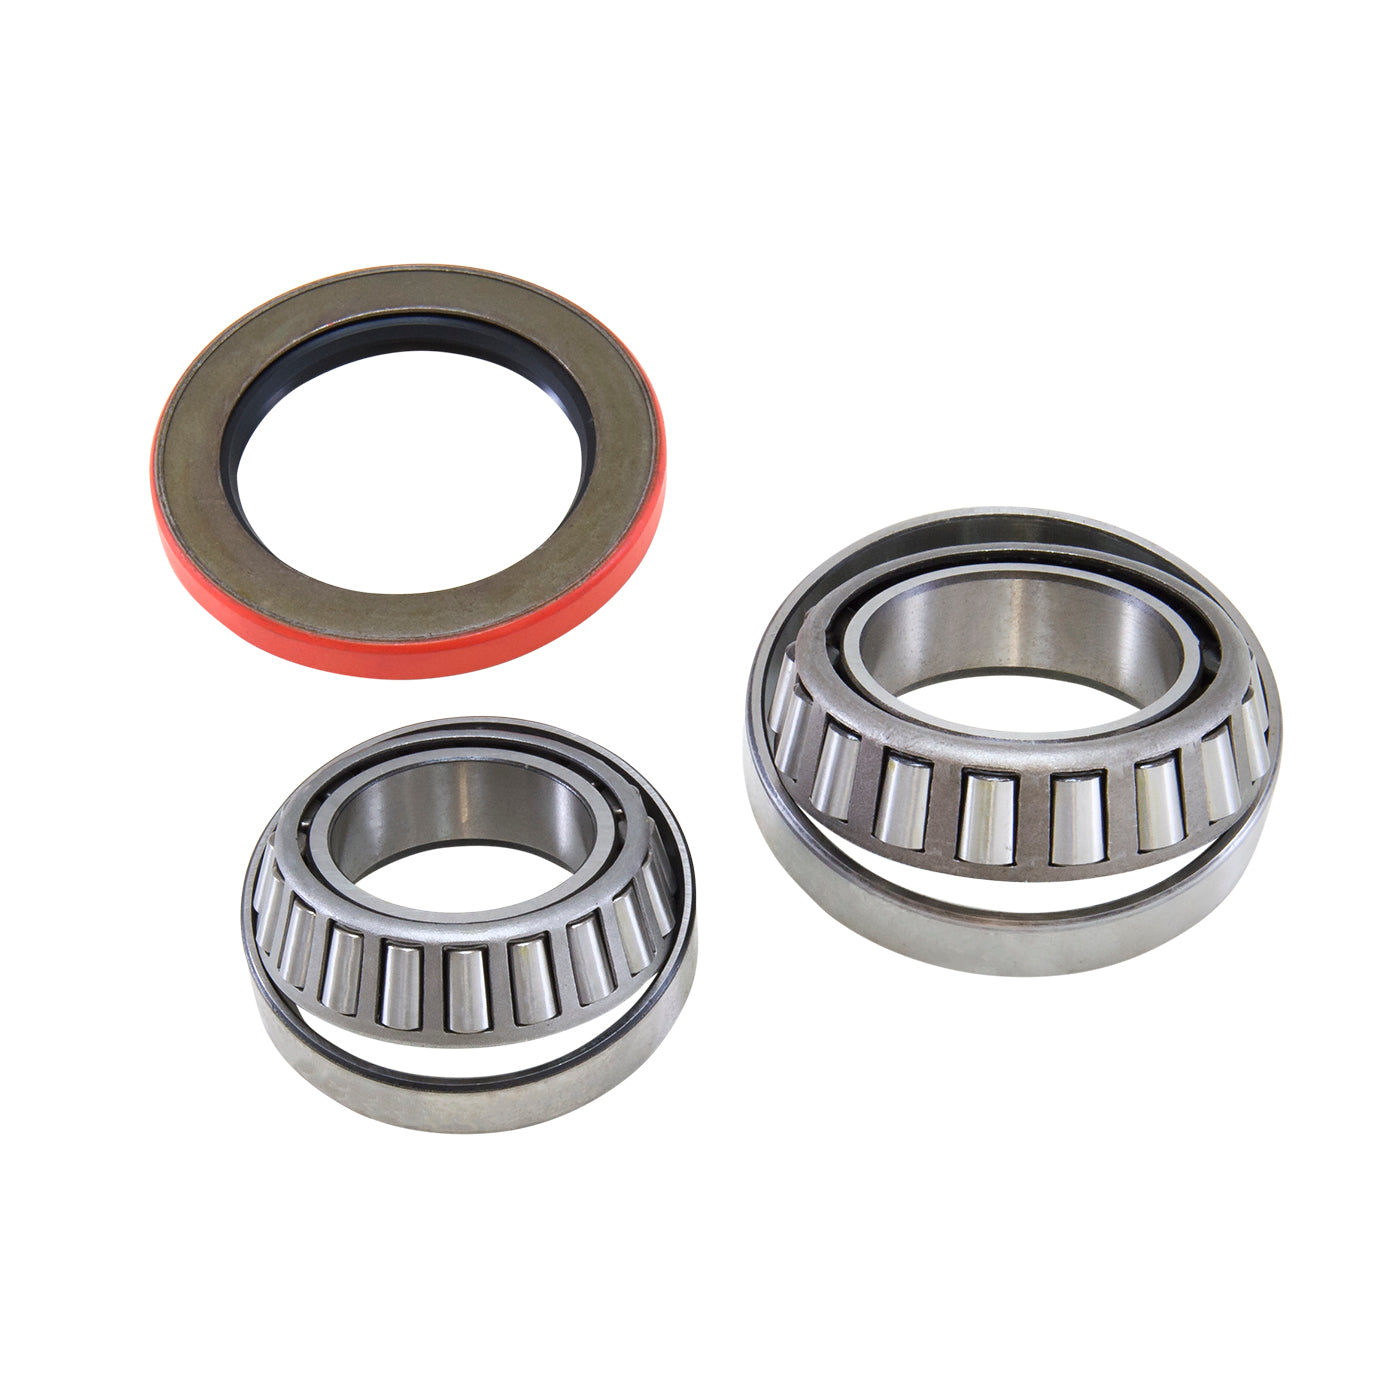 Dana 44 Front Axle Bearing And Seal Kit Replacement 1959-1977 Ford 3/4 Ton Yukon Gear & Axle